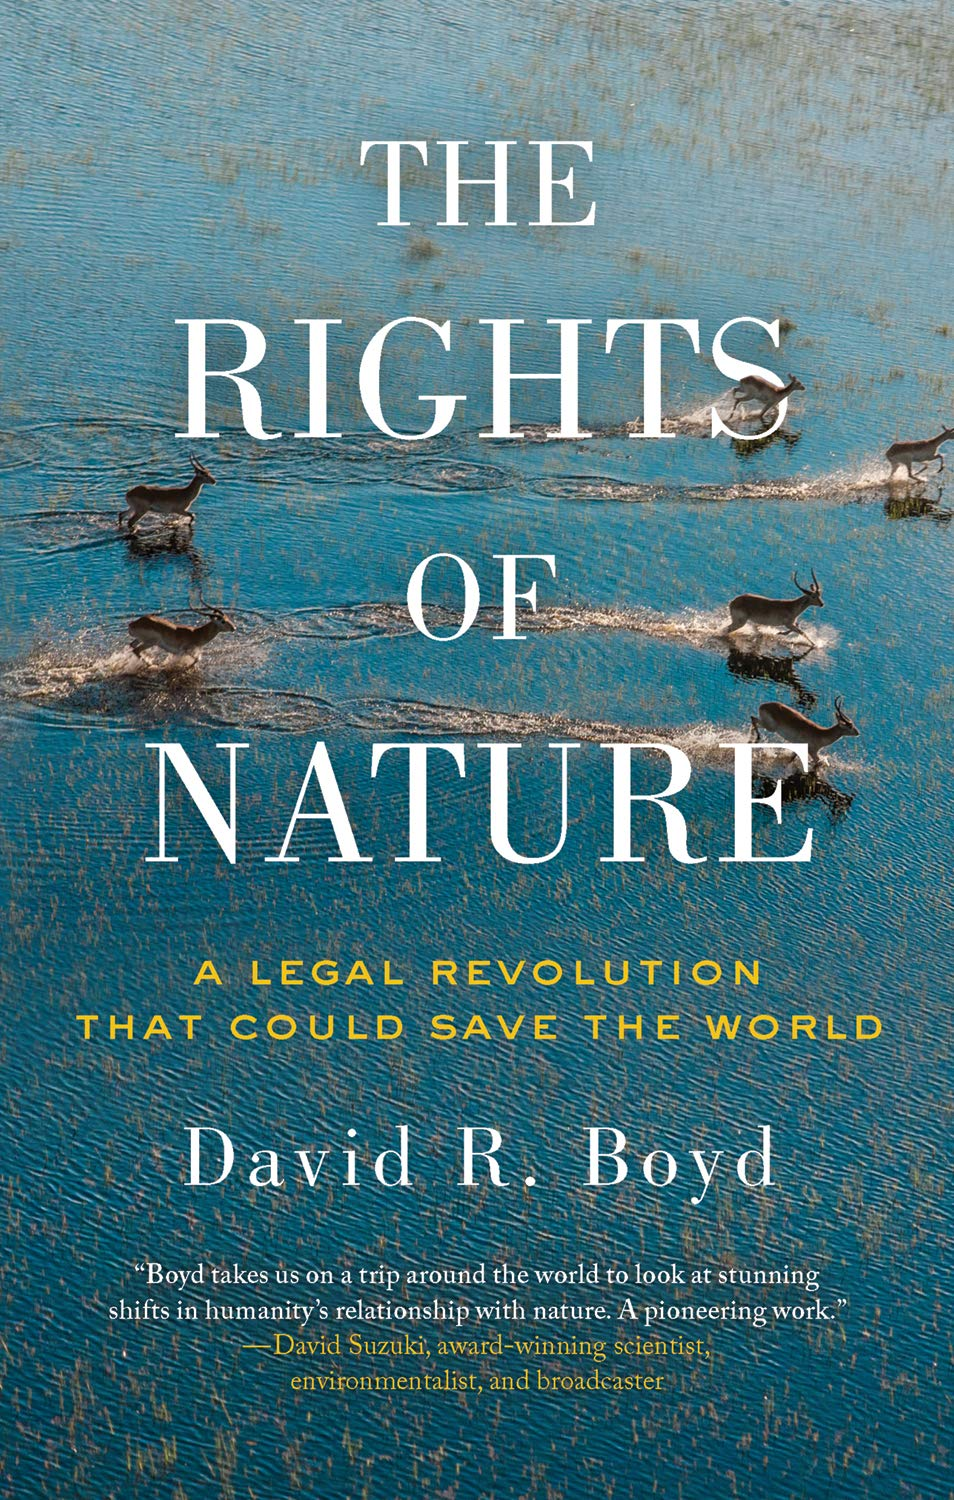 The Rights of Nature: A Legal Revolution That Could Save the World: Boyd, David R.: 9781770412392: Amazon.com: Books